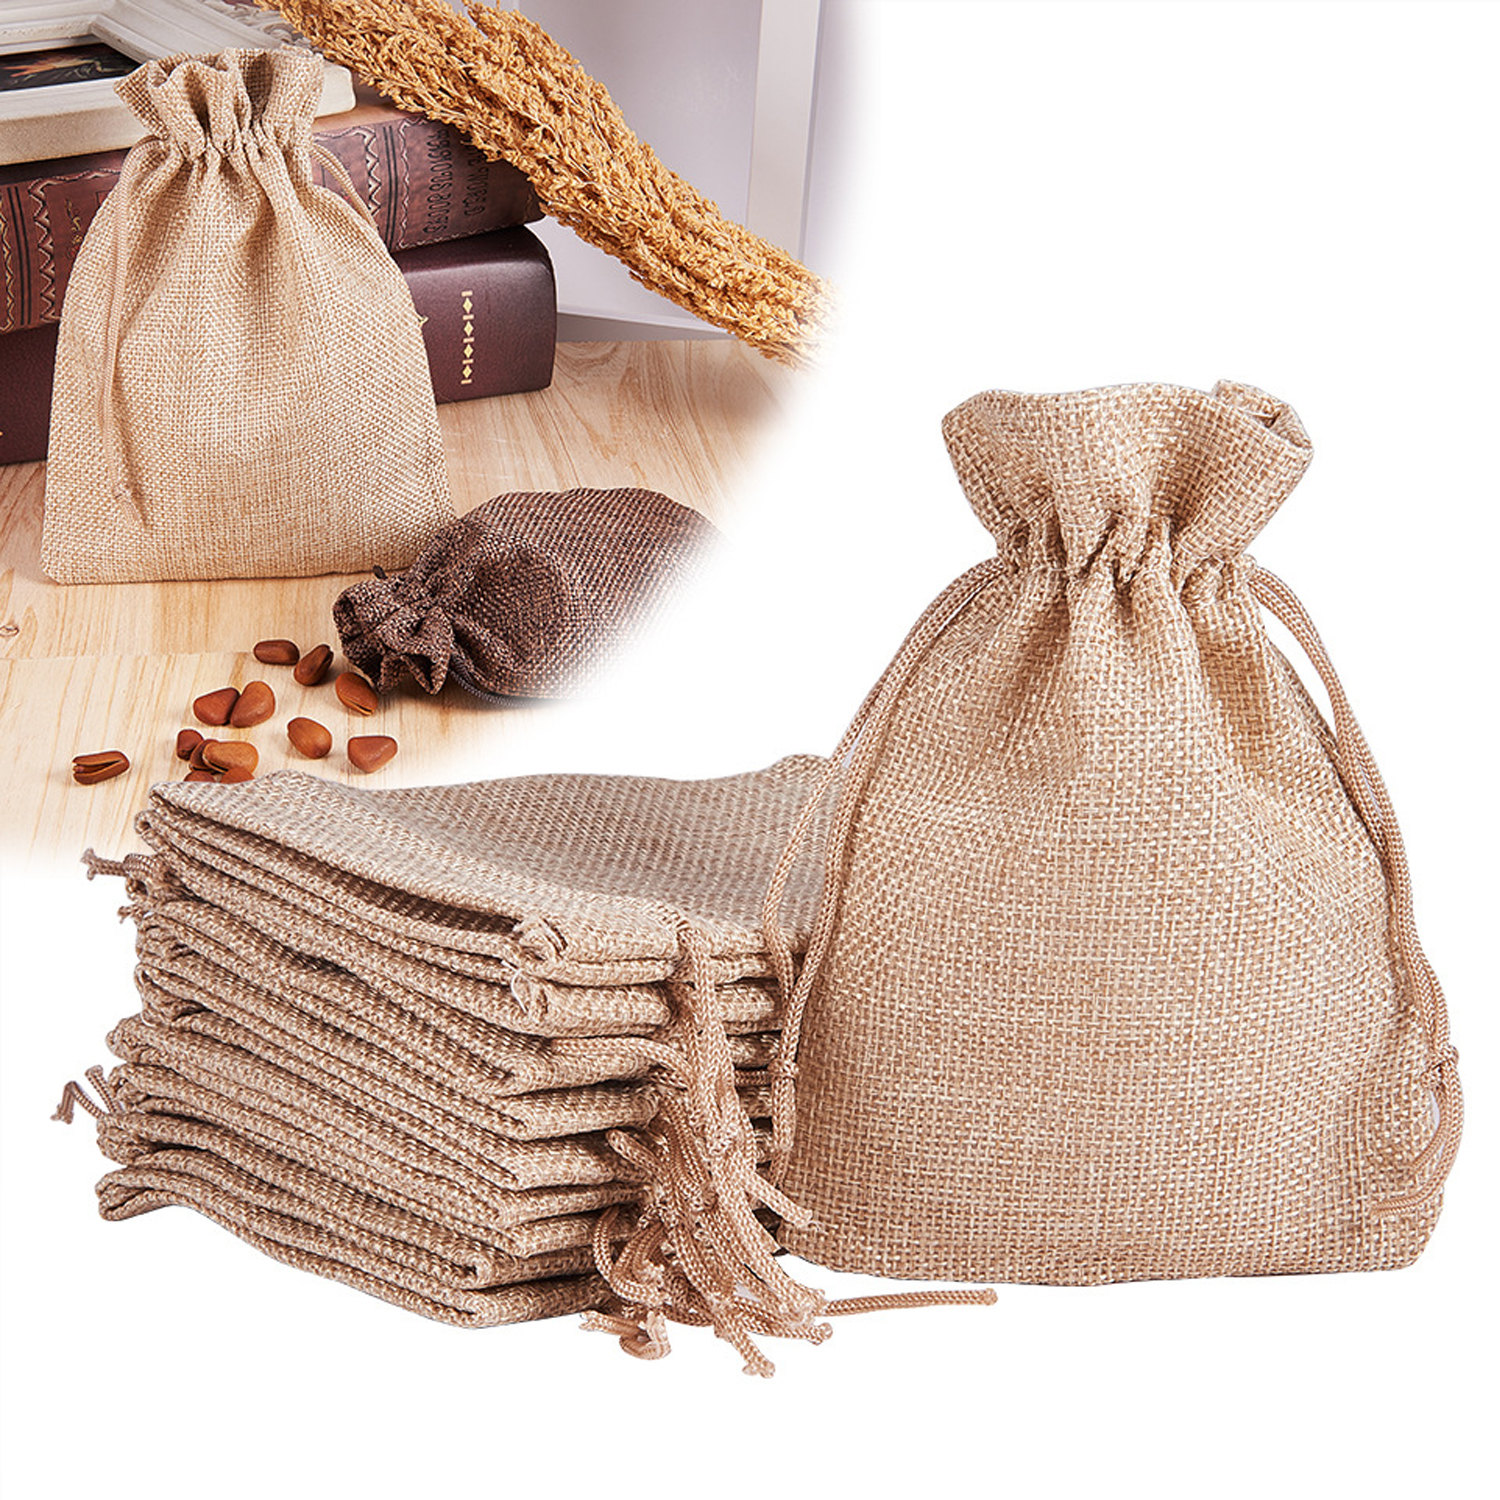 Behogar 20PCS 13.5x9.5cm Linen Cadby Gift Jewelry Drawstring Bags Pouches for We